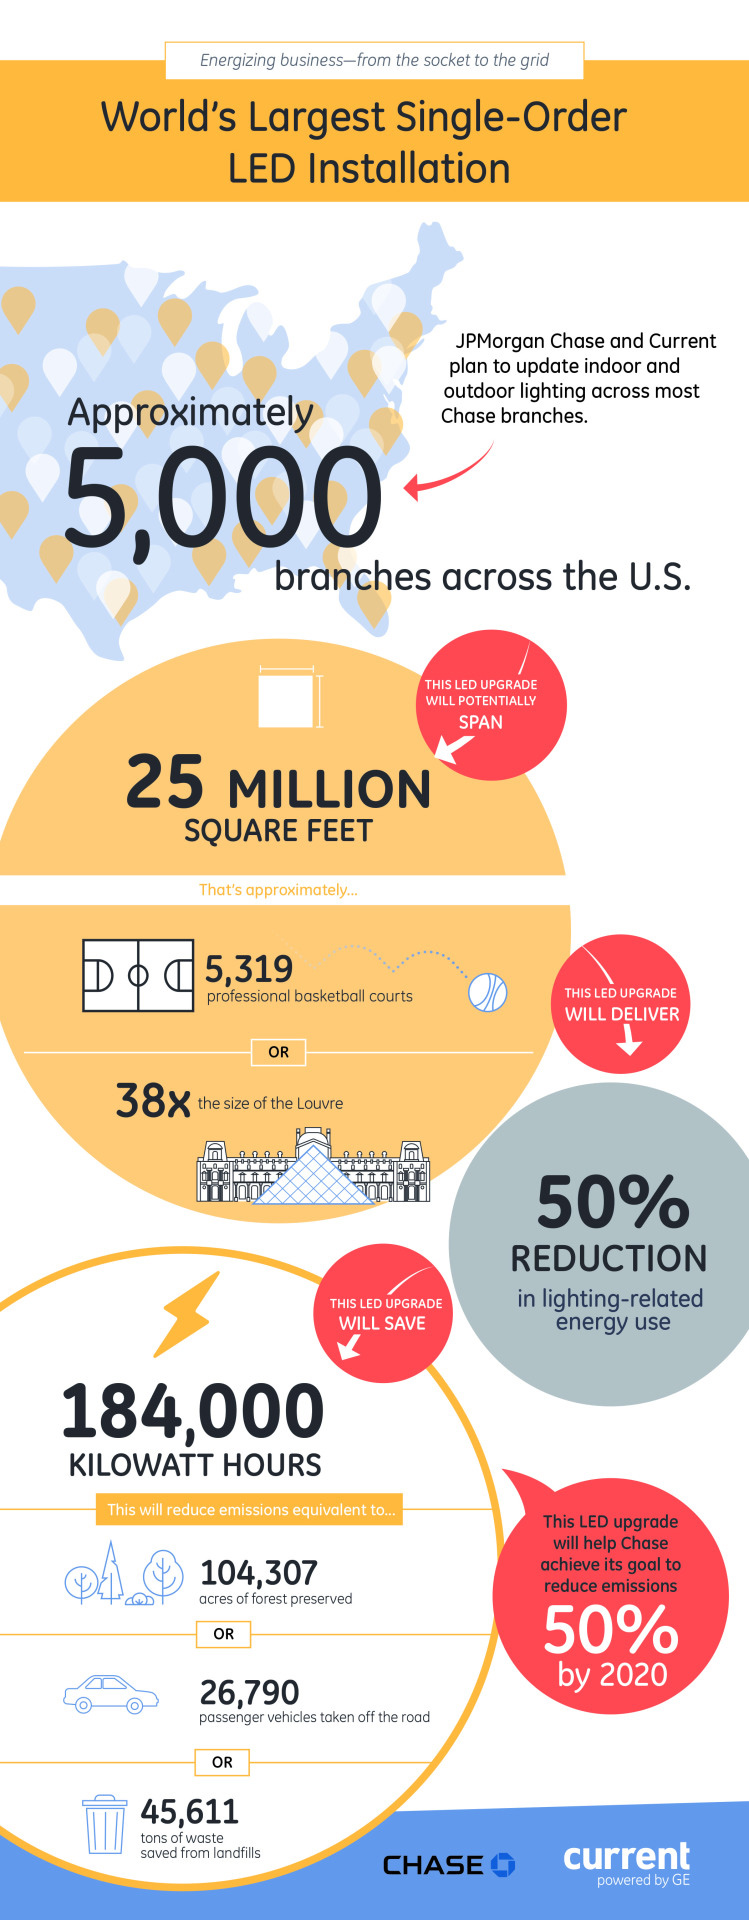 JPMorgan Chase LED installation infographic